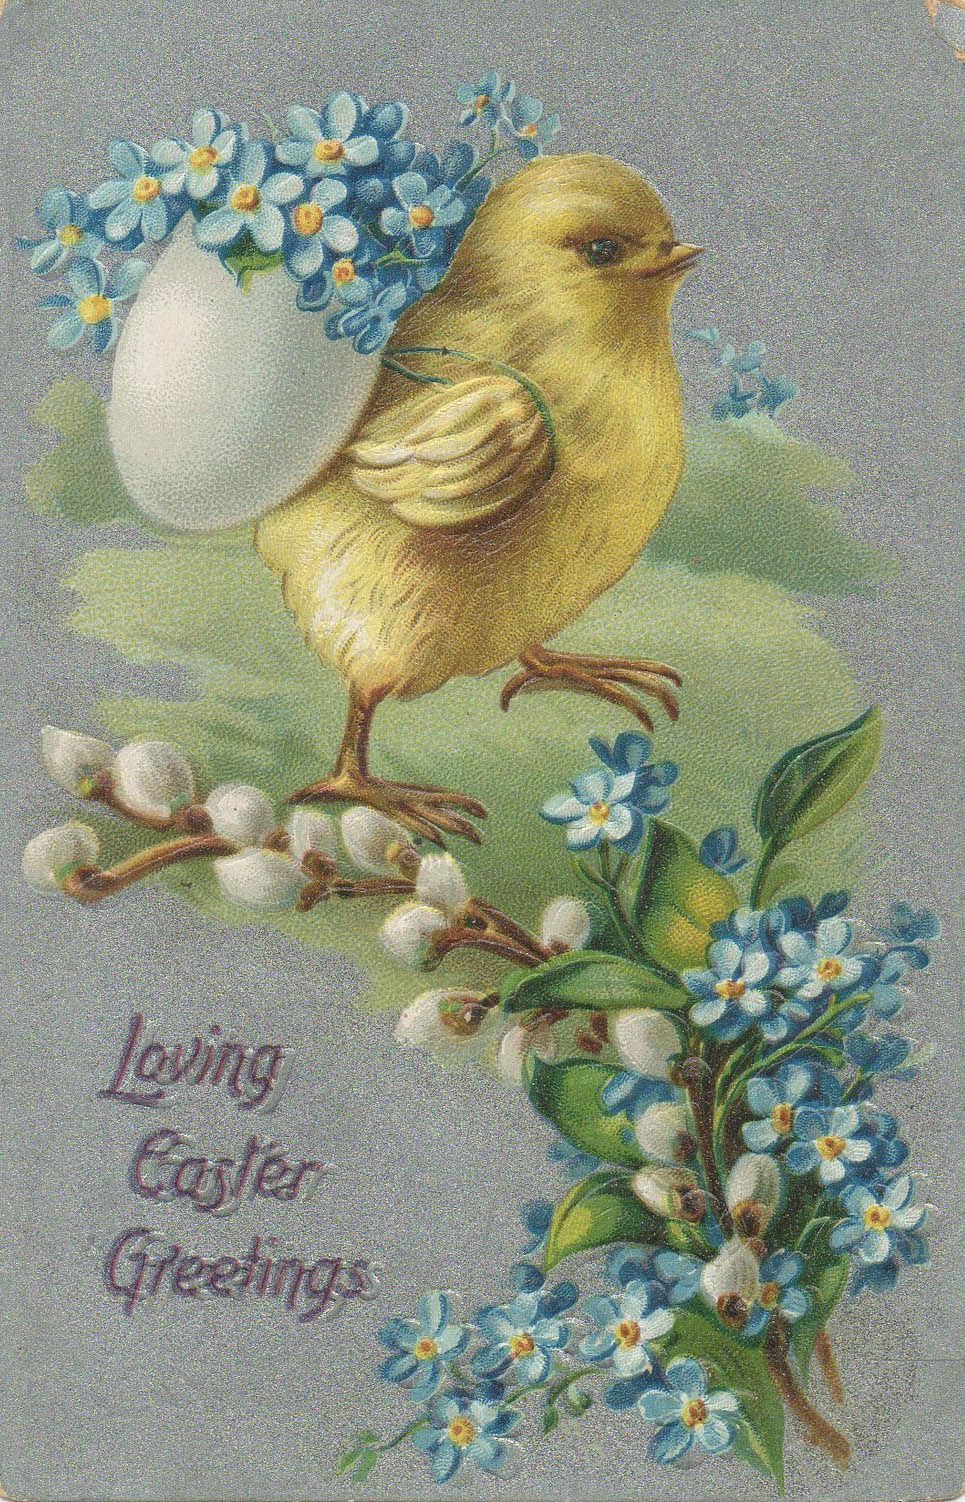 Yellow Chick With Blue Flowers In Egg Pintura Em Tecido